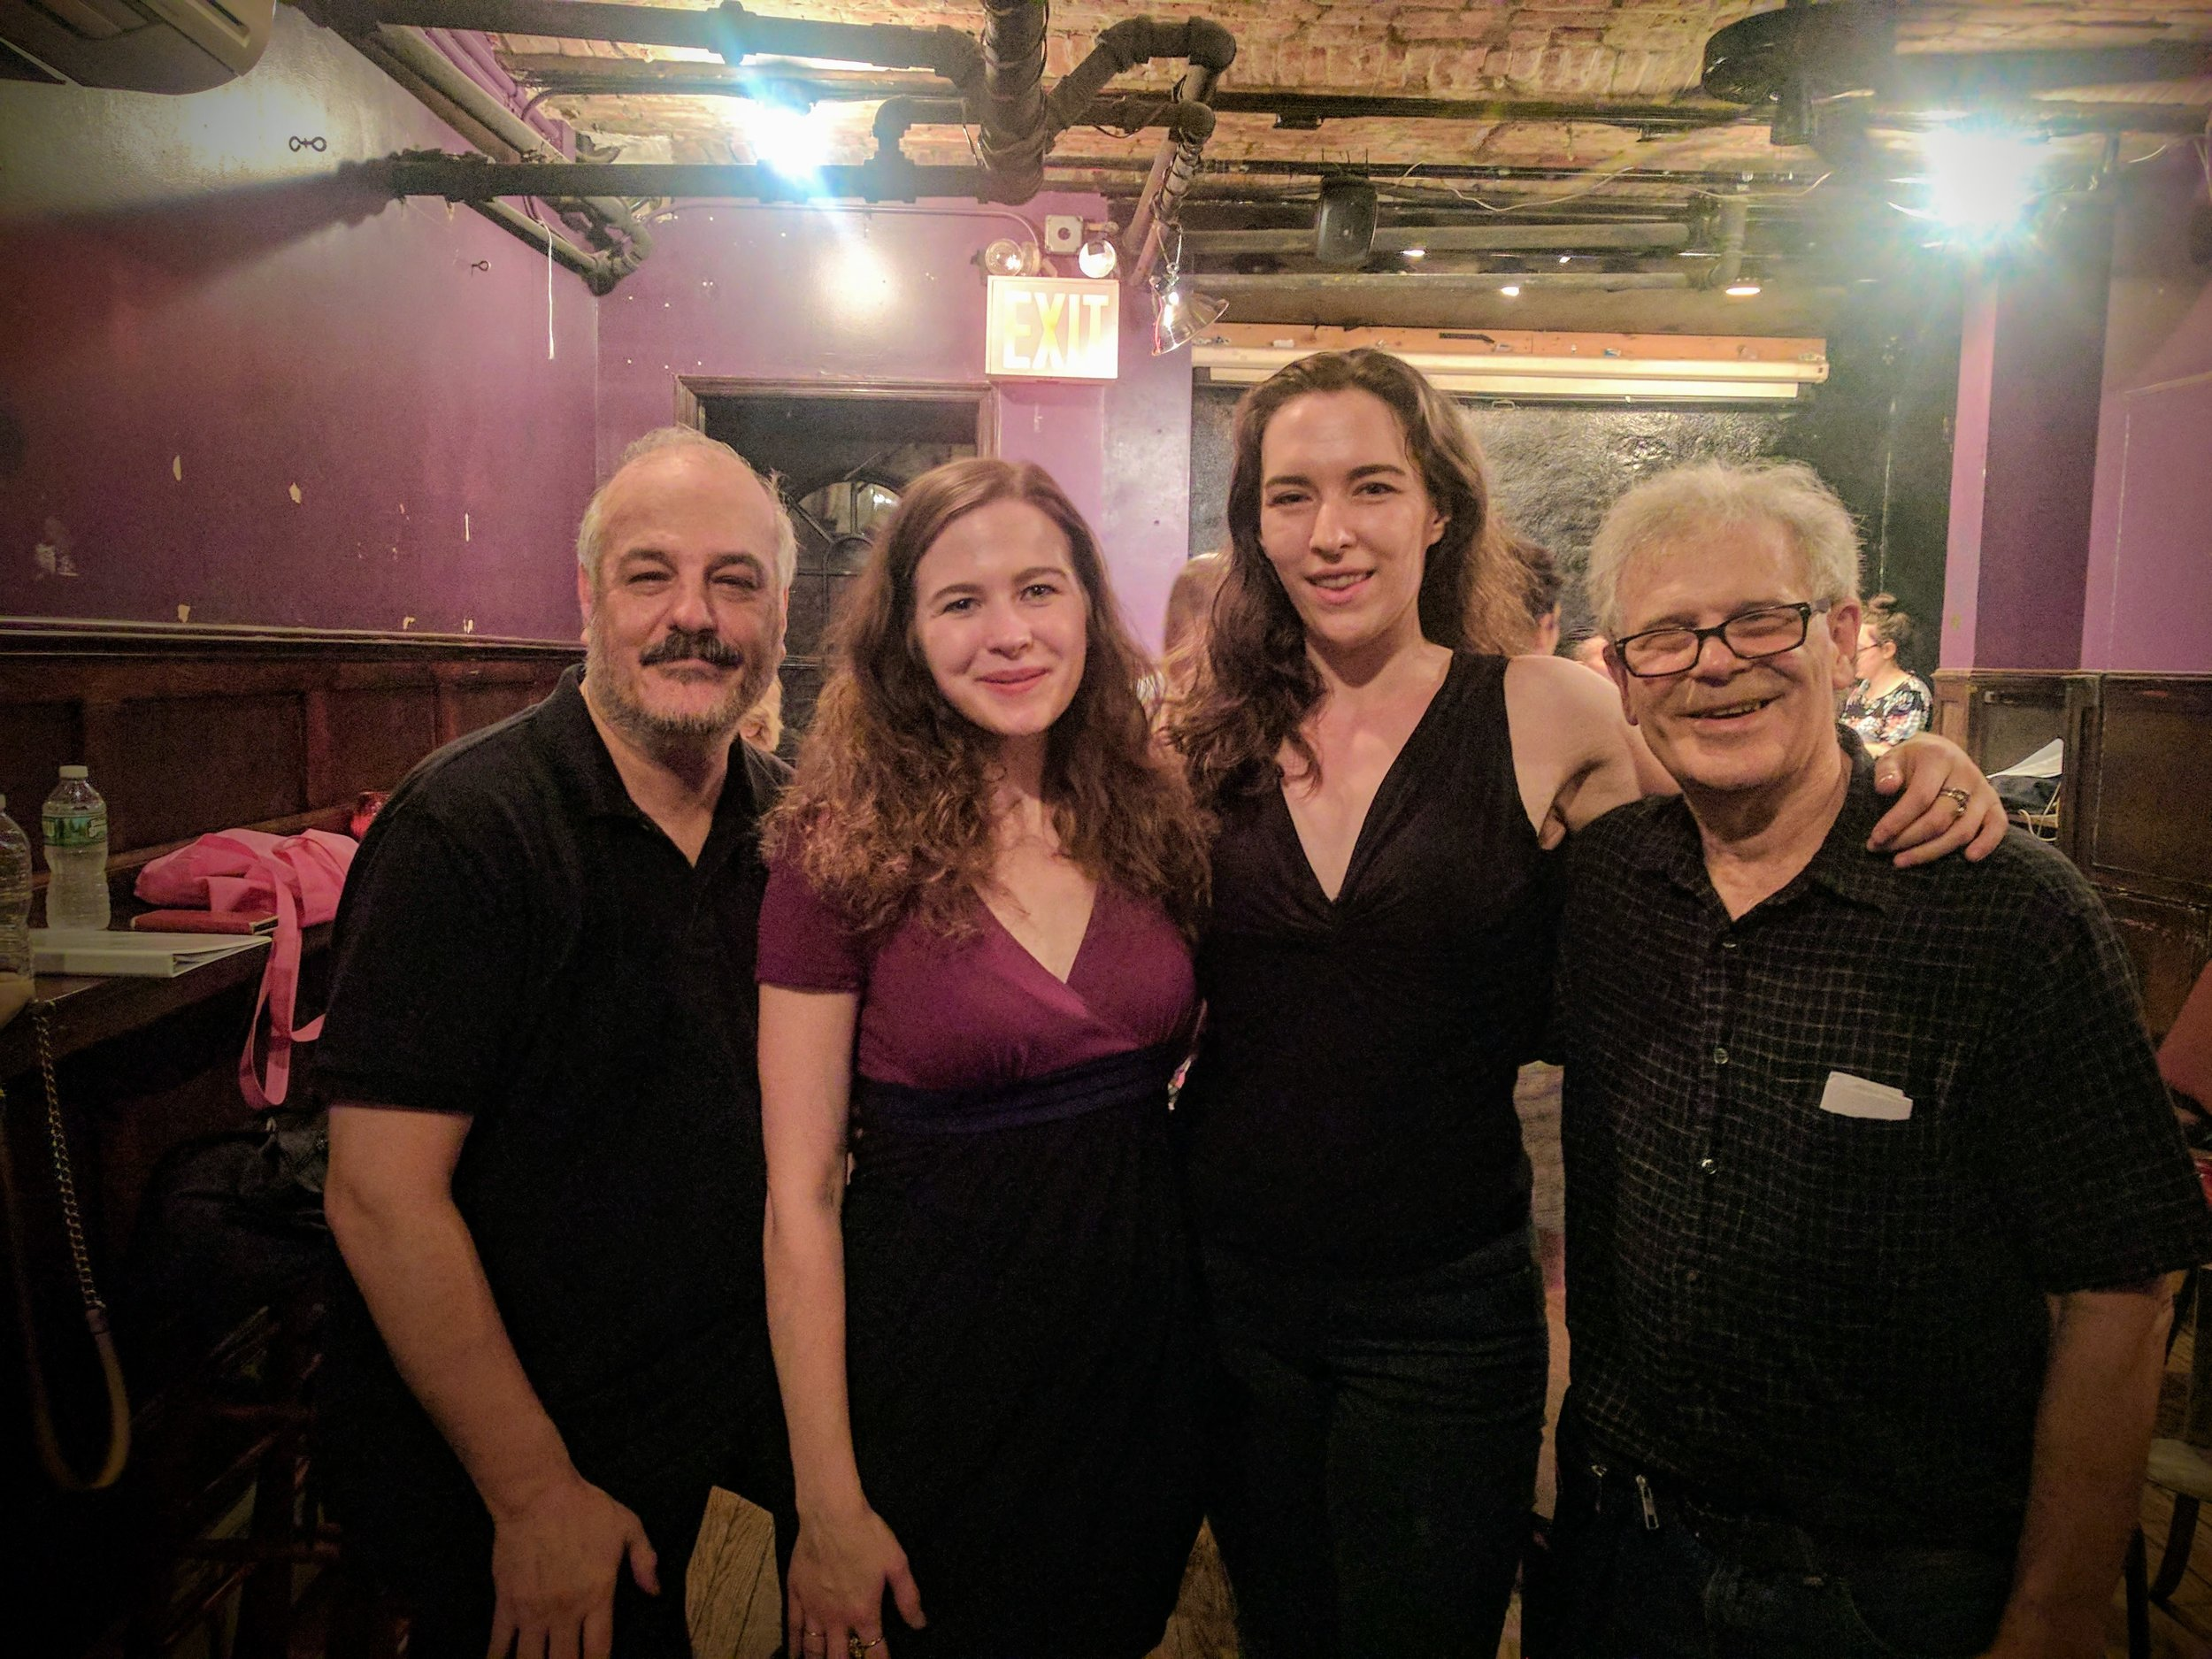 Eric Grunin, Anna Paone, Krystal Sobaskie, and Ed Levy at Primary Stages ESPA 10th Anniversary Concert before the debut of two of Ed and Eric's Songs.